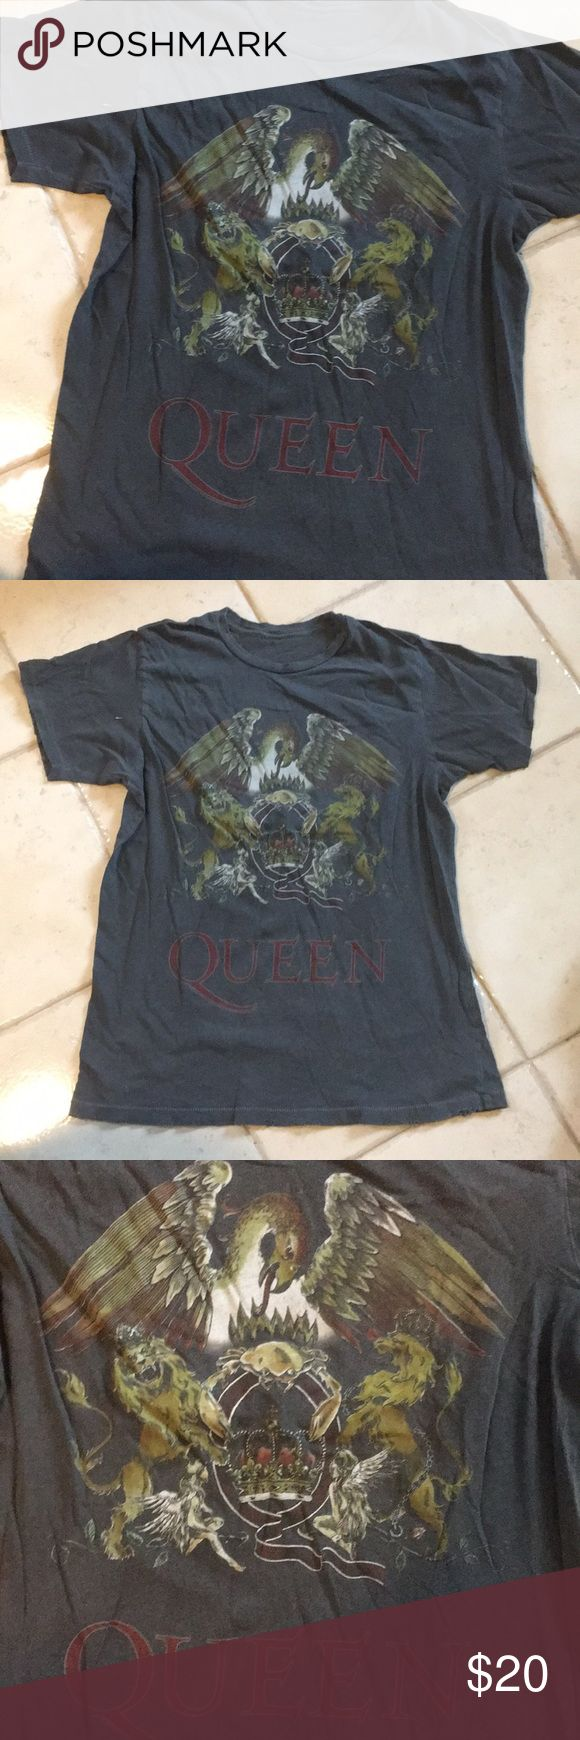 Distressed queen rock band tee shirt Worn and tag has been removed. Distressed edges. Very soft shirt. Small to Medium fit Shirts Tees - Short Sleeve